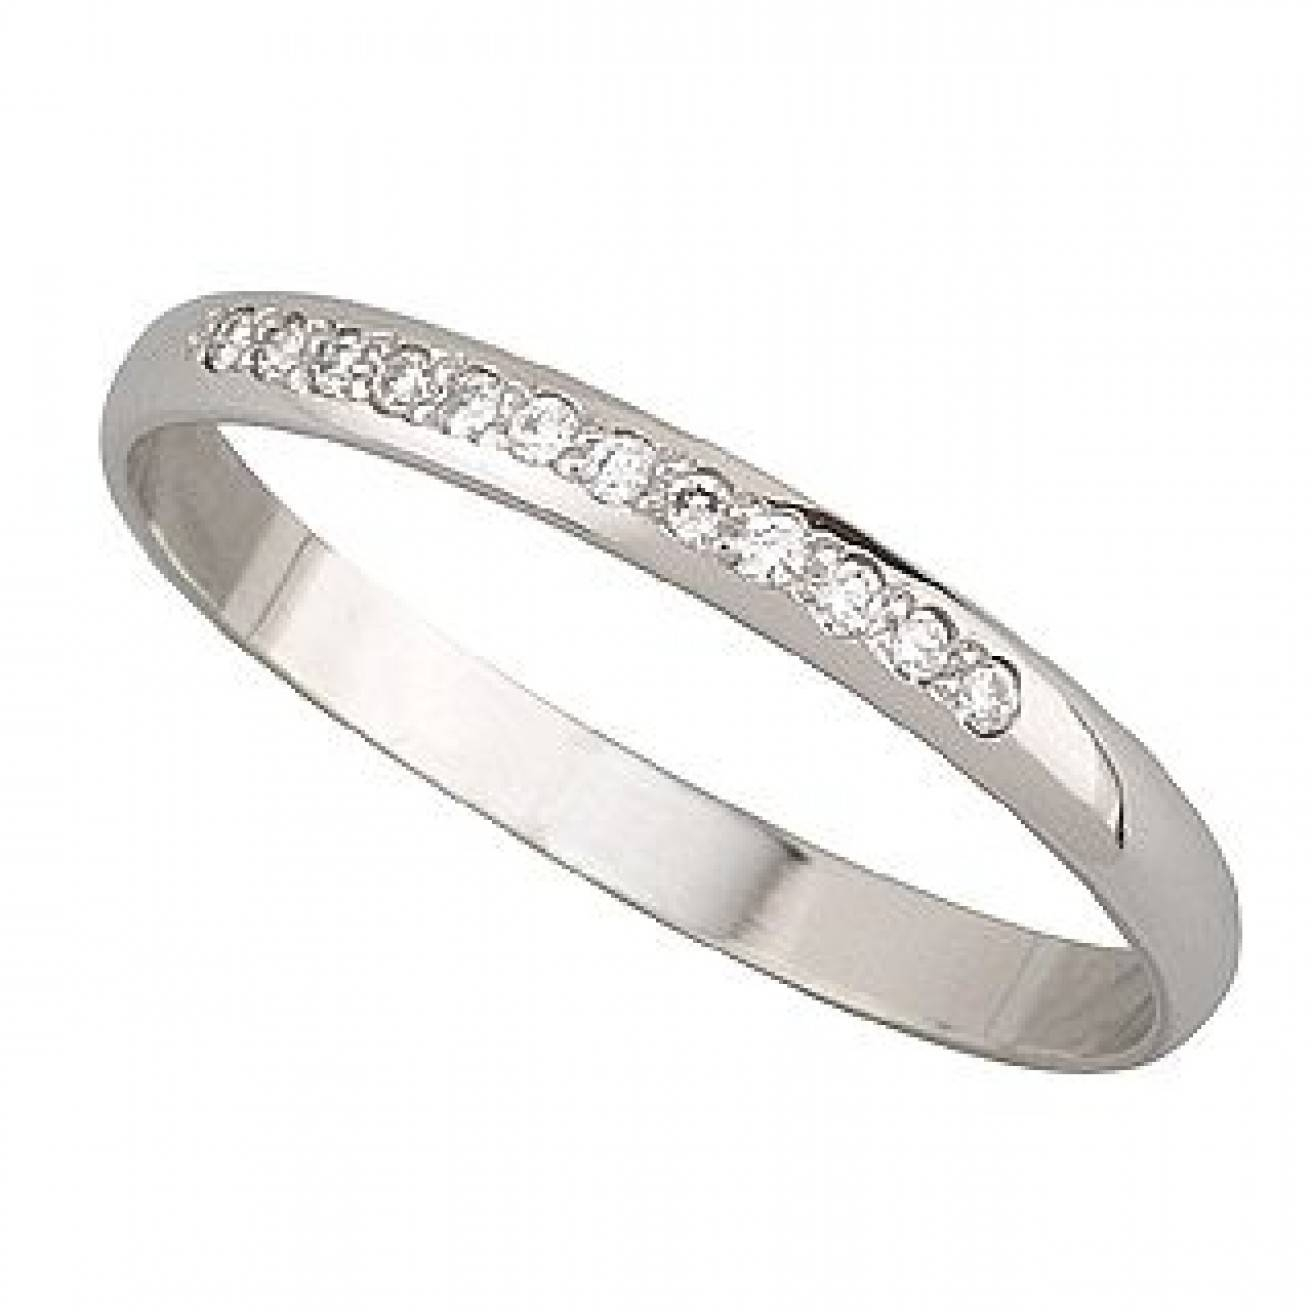 Buy Platinum Wedding Bands Online – Fraser Hart With Platinum Ladies Wedding Rings (View 4 of 15)